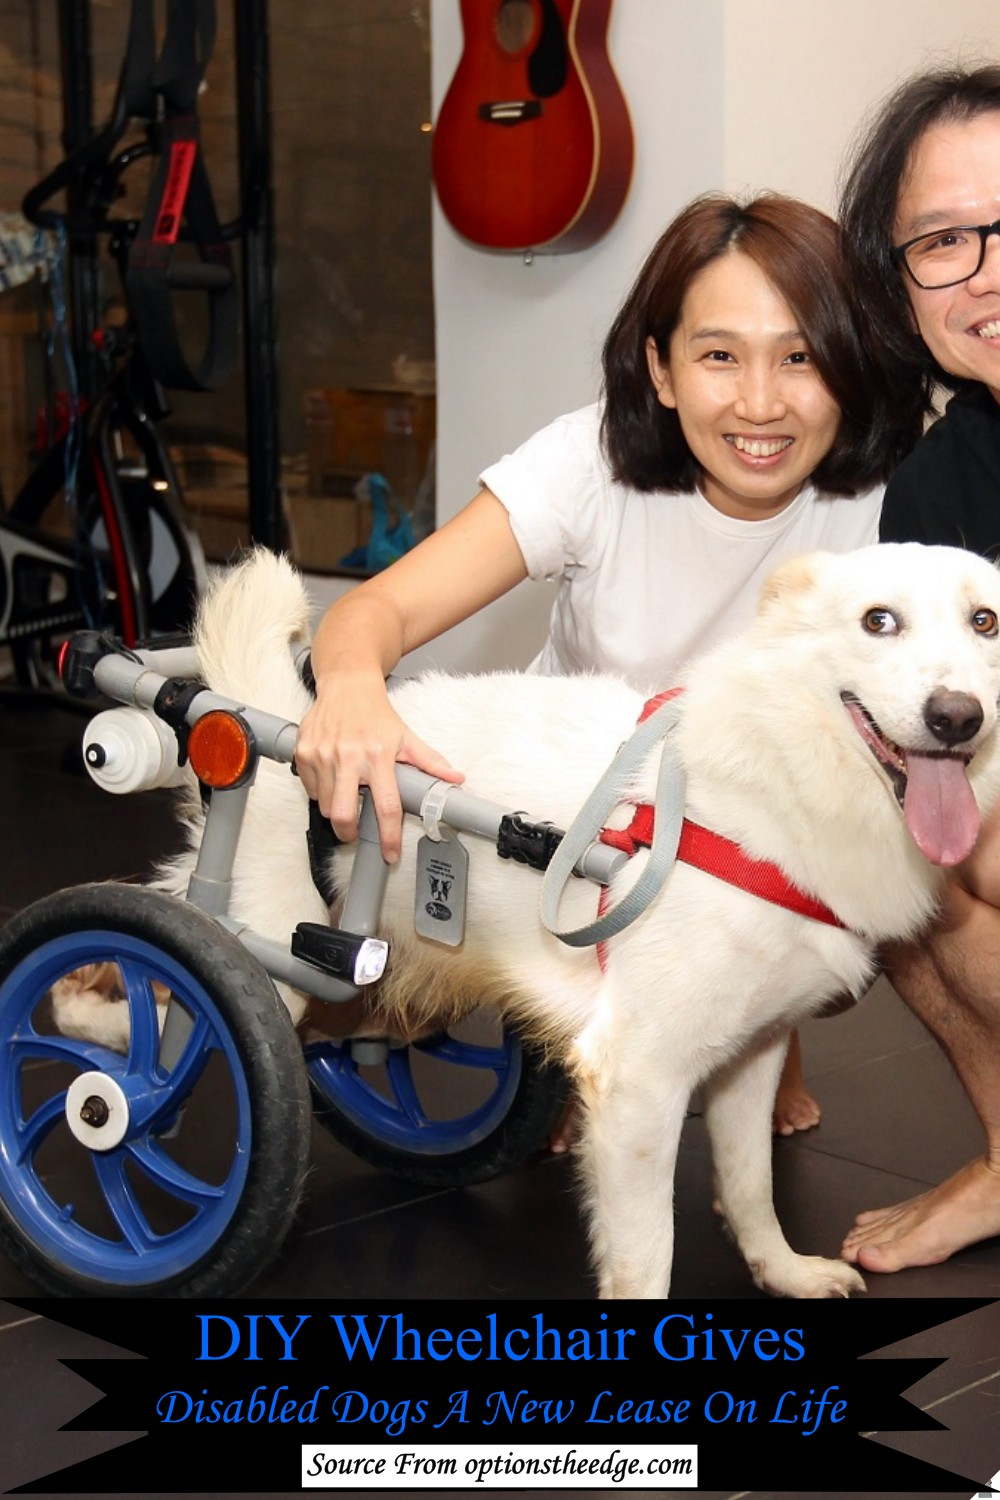 DIY Wheelchair Gives Disabled Dogs A New Lease On Life